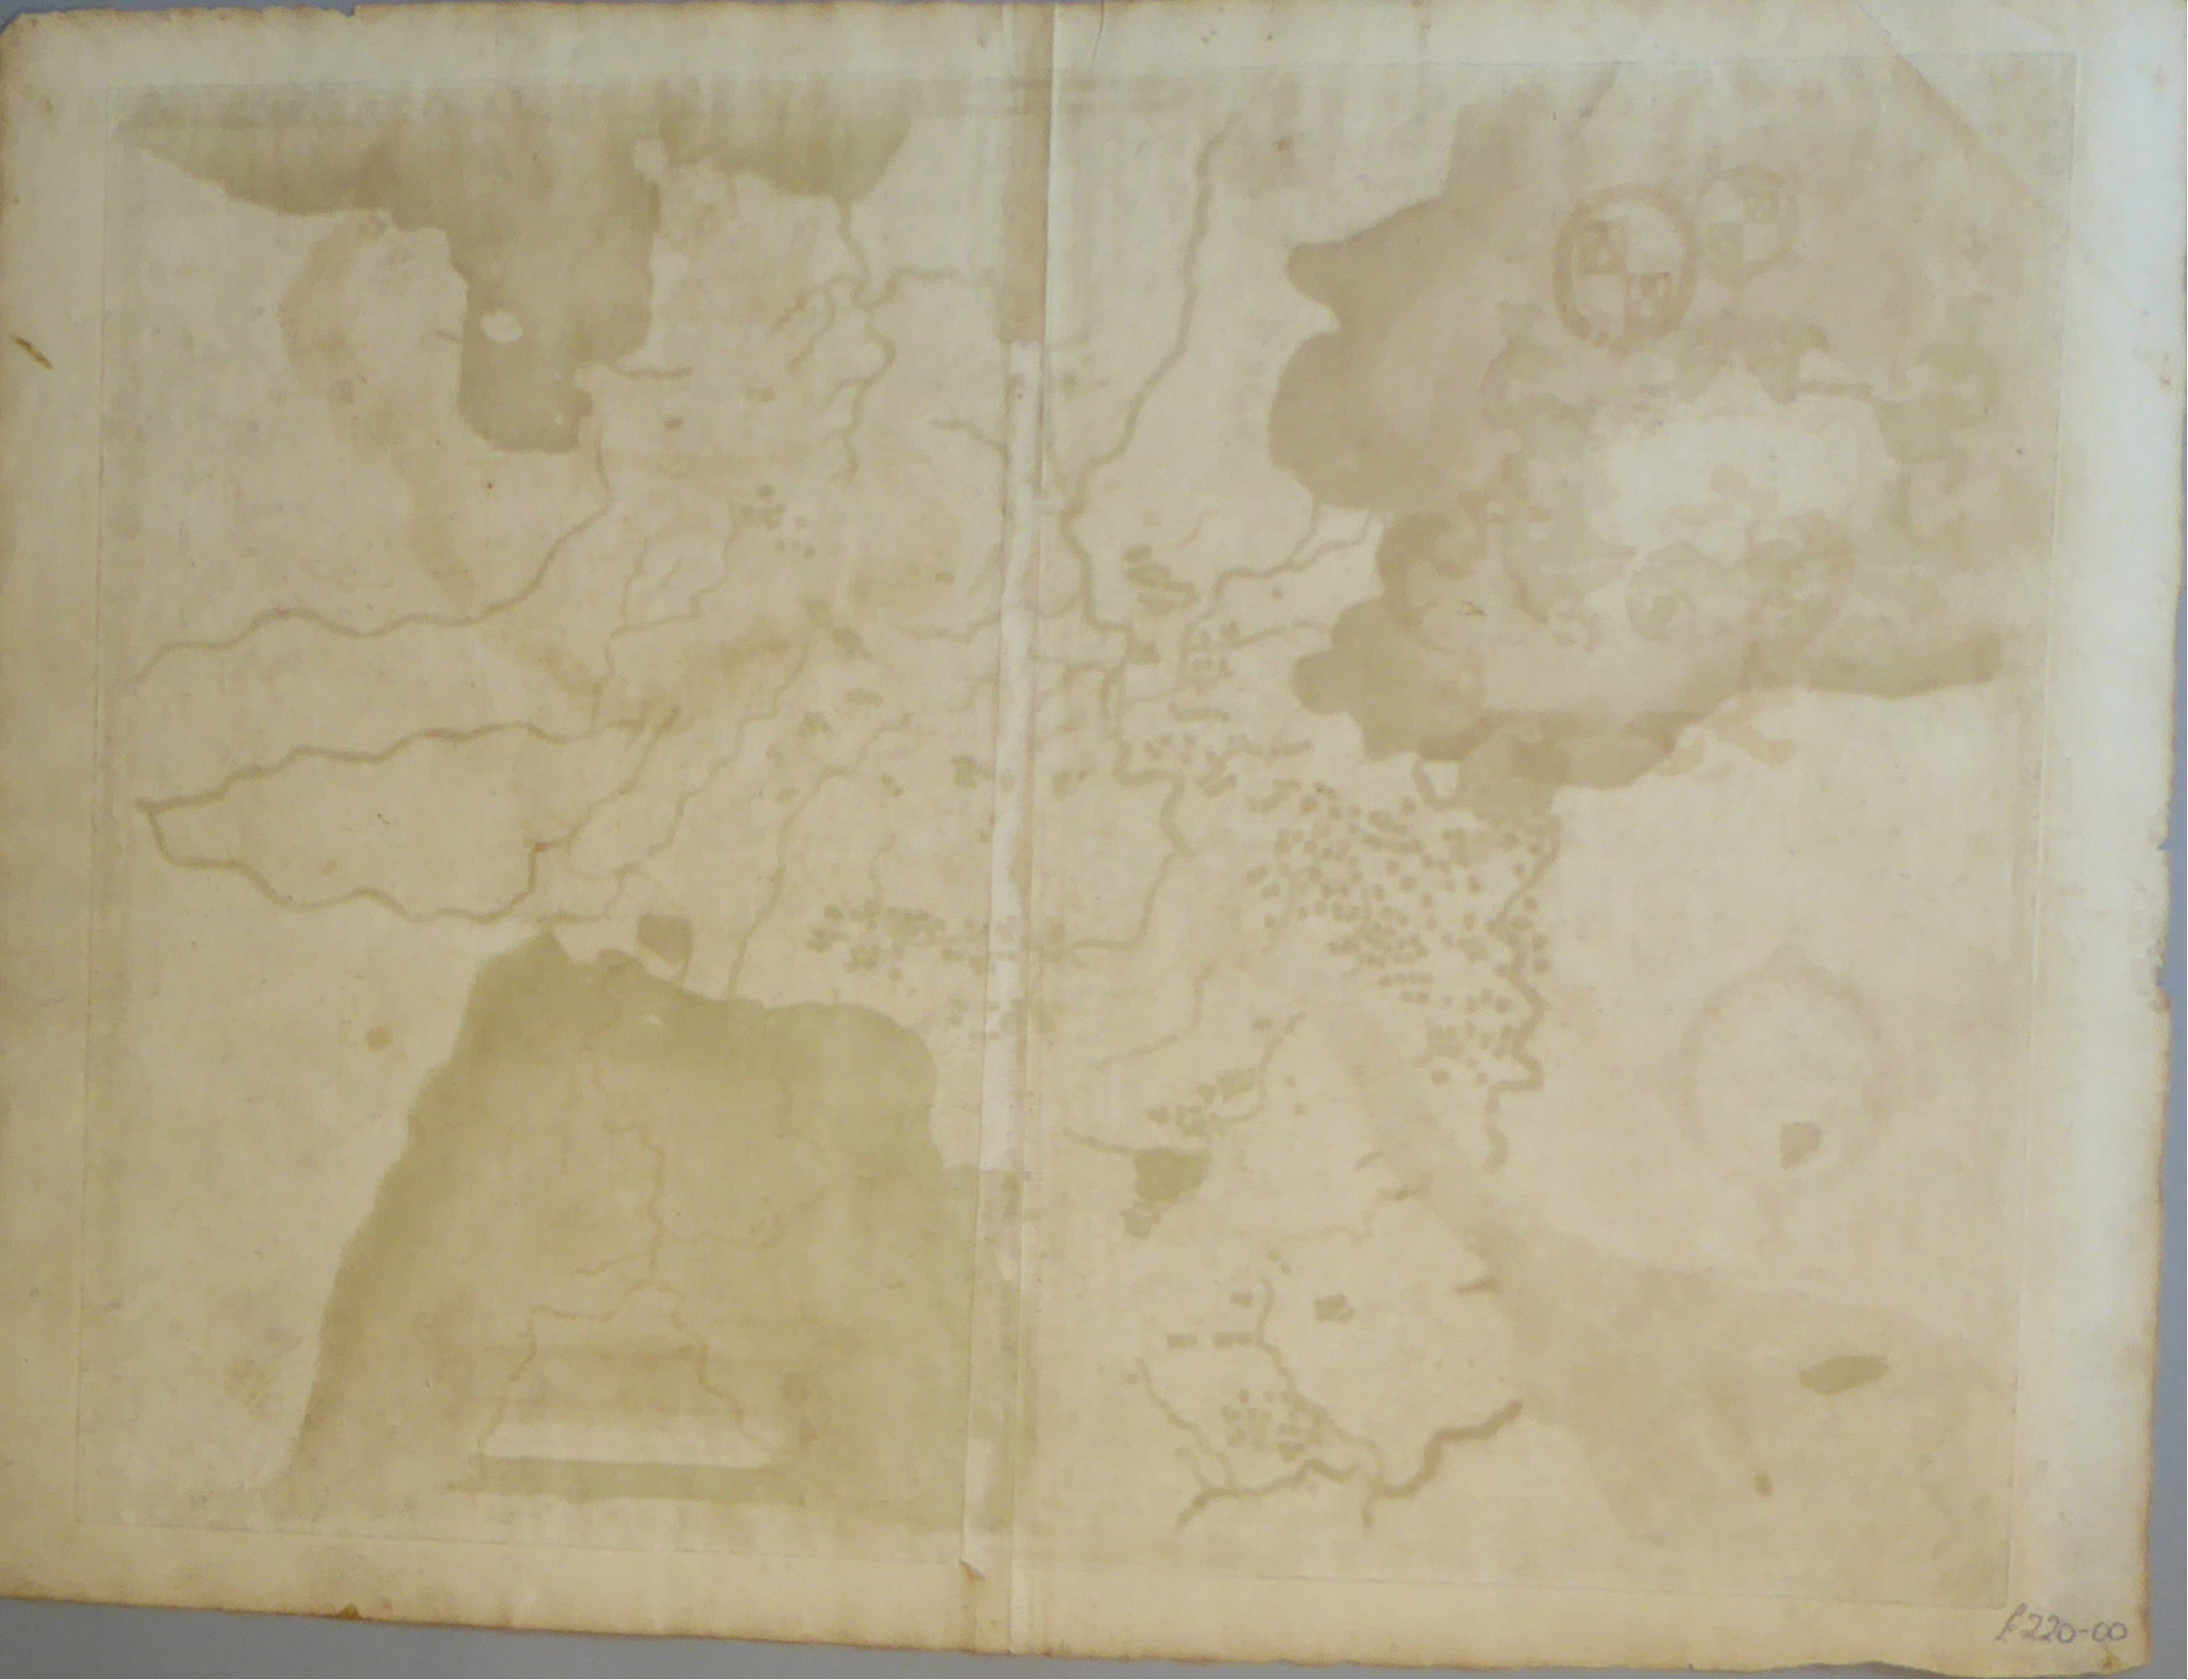 Lot 4 - A C16th hand coloured copper engraved map of Gloucestershire by Christopher Saxton c1579